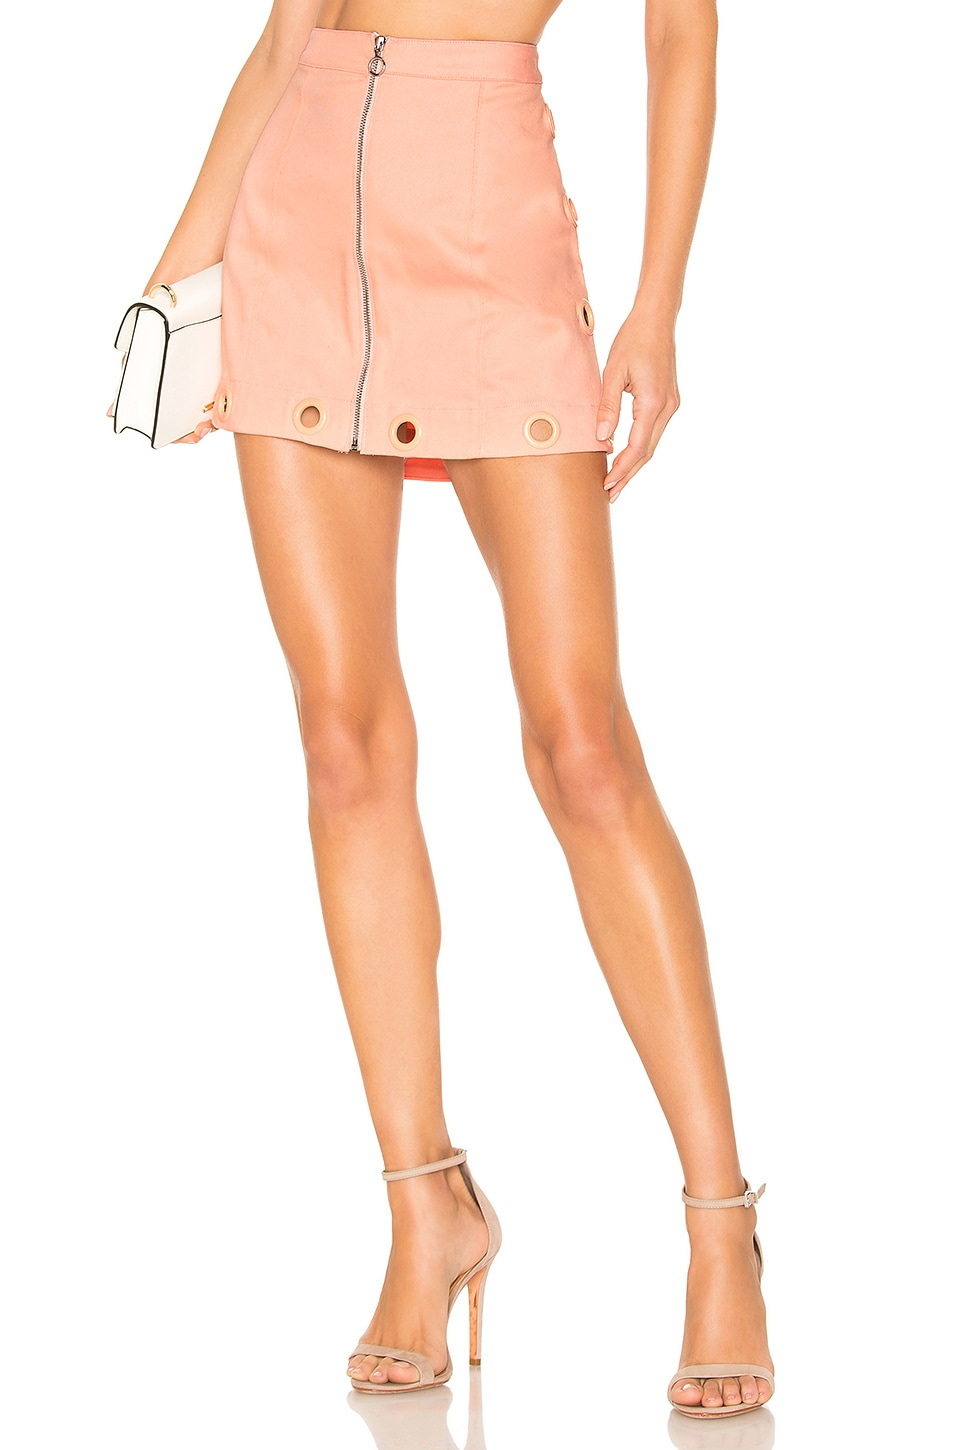 For Love & Lemons Creme Puff Mini Skirt in Cotton Candy